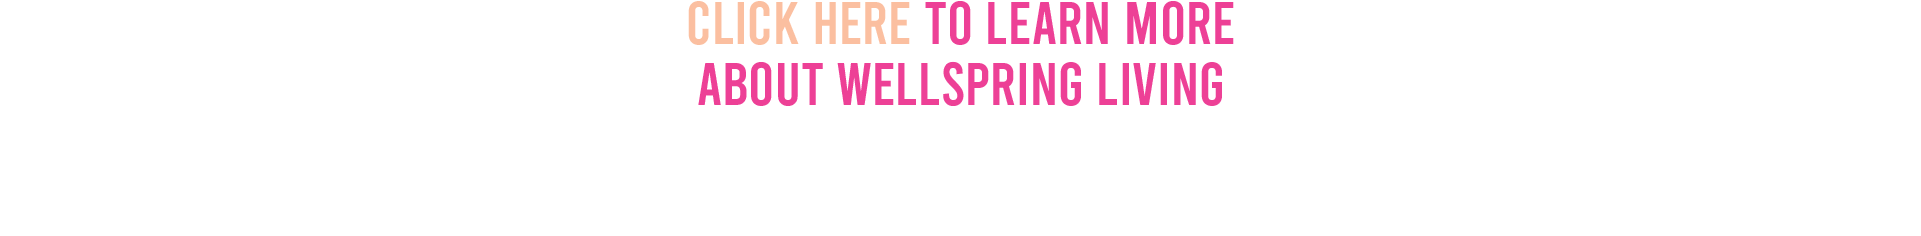 Click here to learn moreabout Wellspring Living!